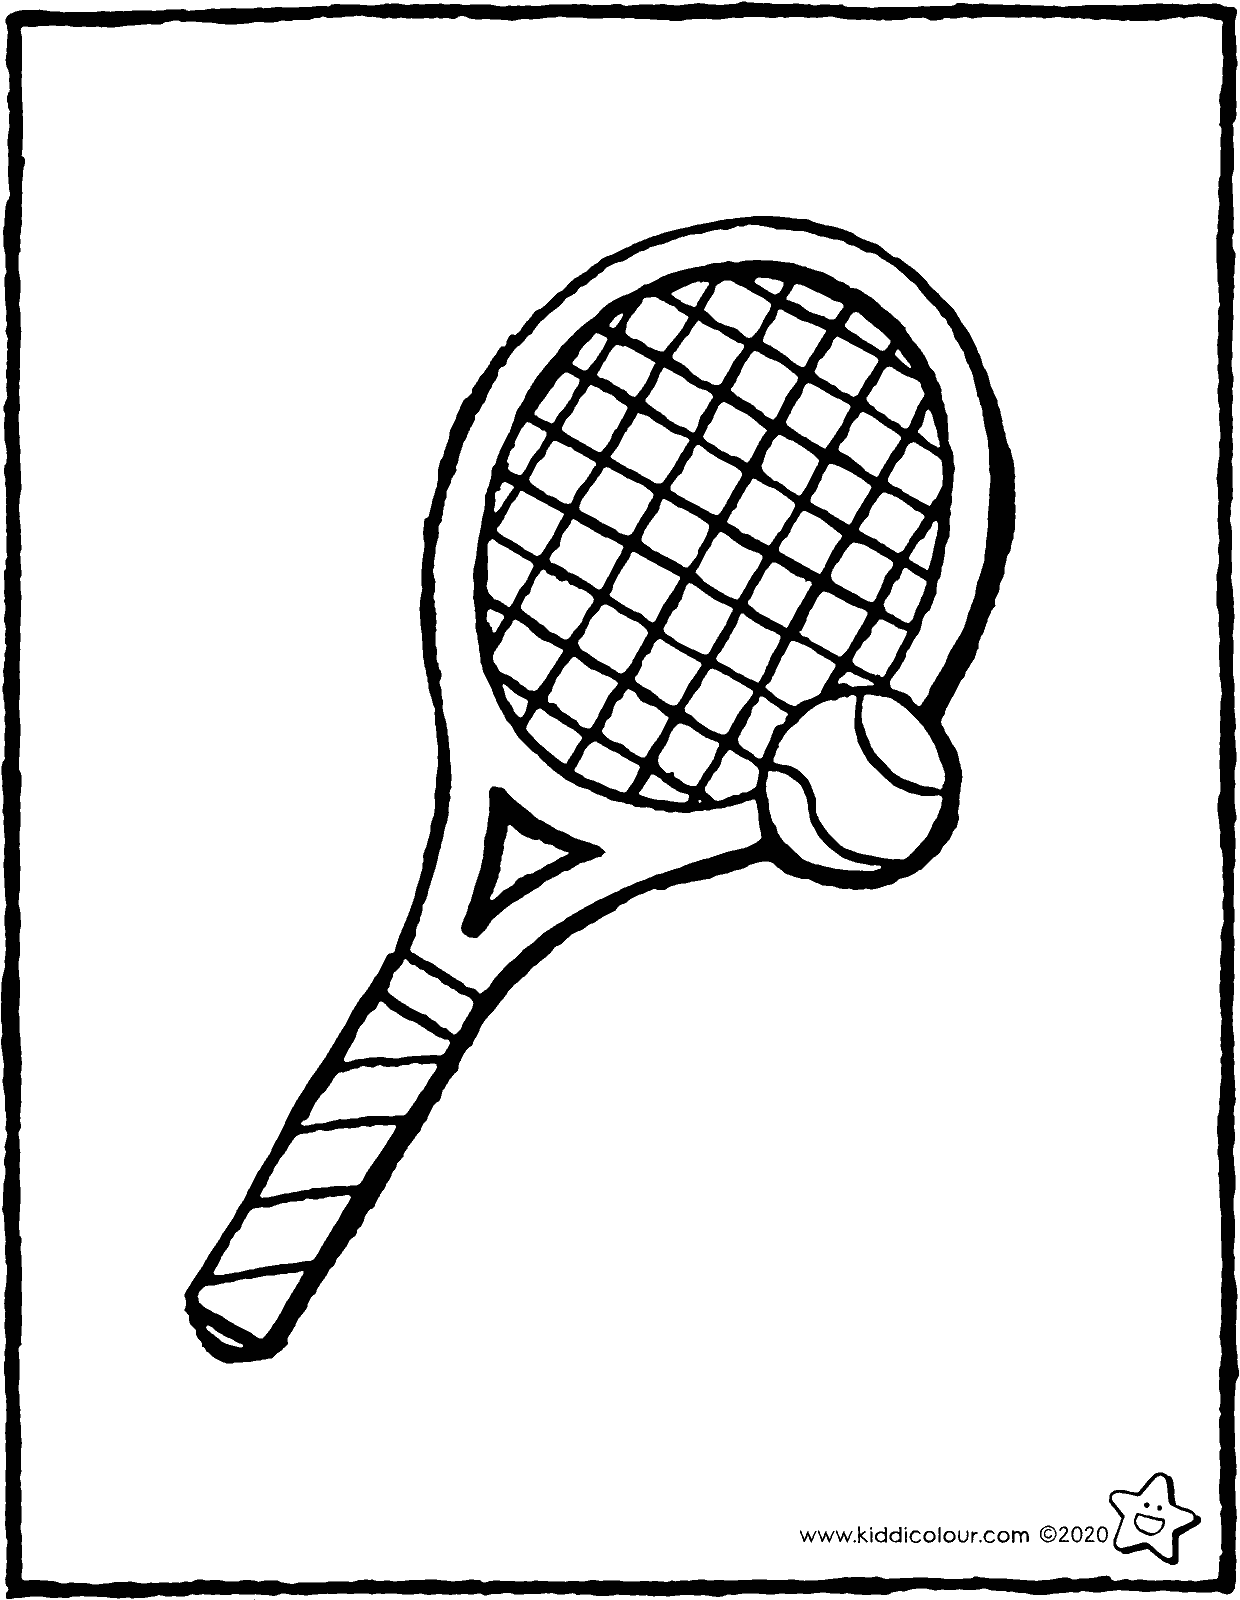 tennis racquet and tennis ball colouring page drawing picture 01V